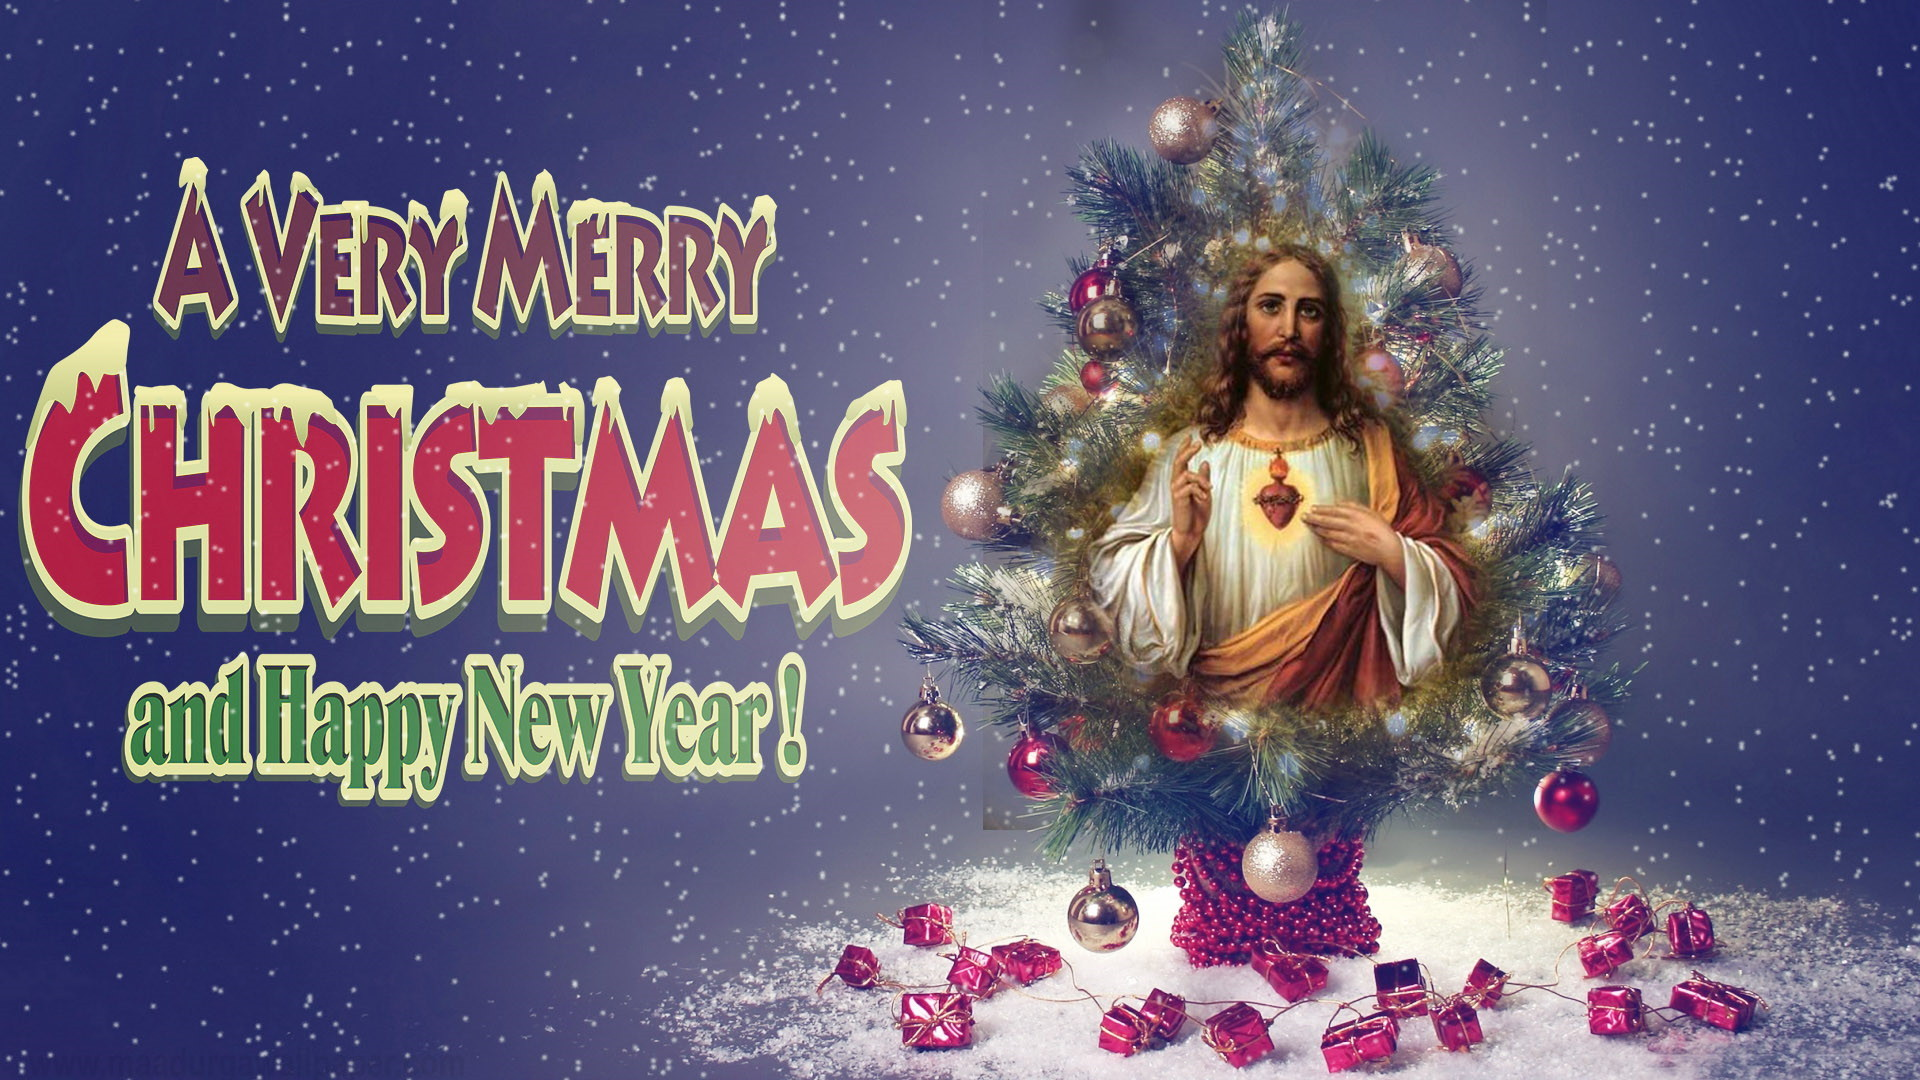 1920x1080 Baby Jesus Christmas wallpaper, beautiful photo & hd images download free  for tablet, desktop